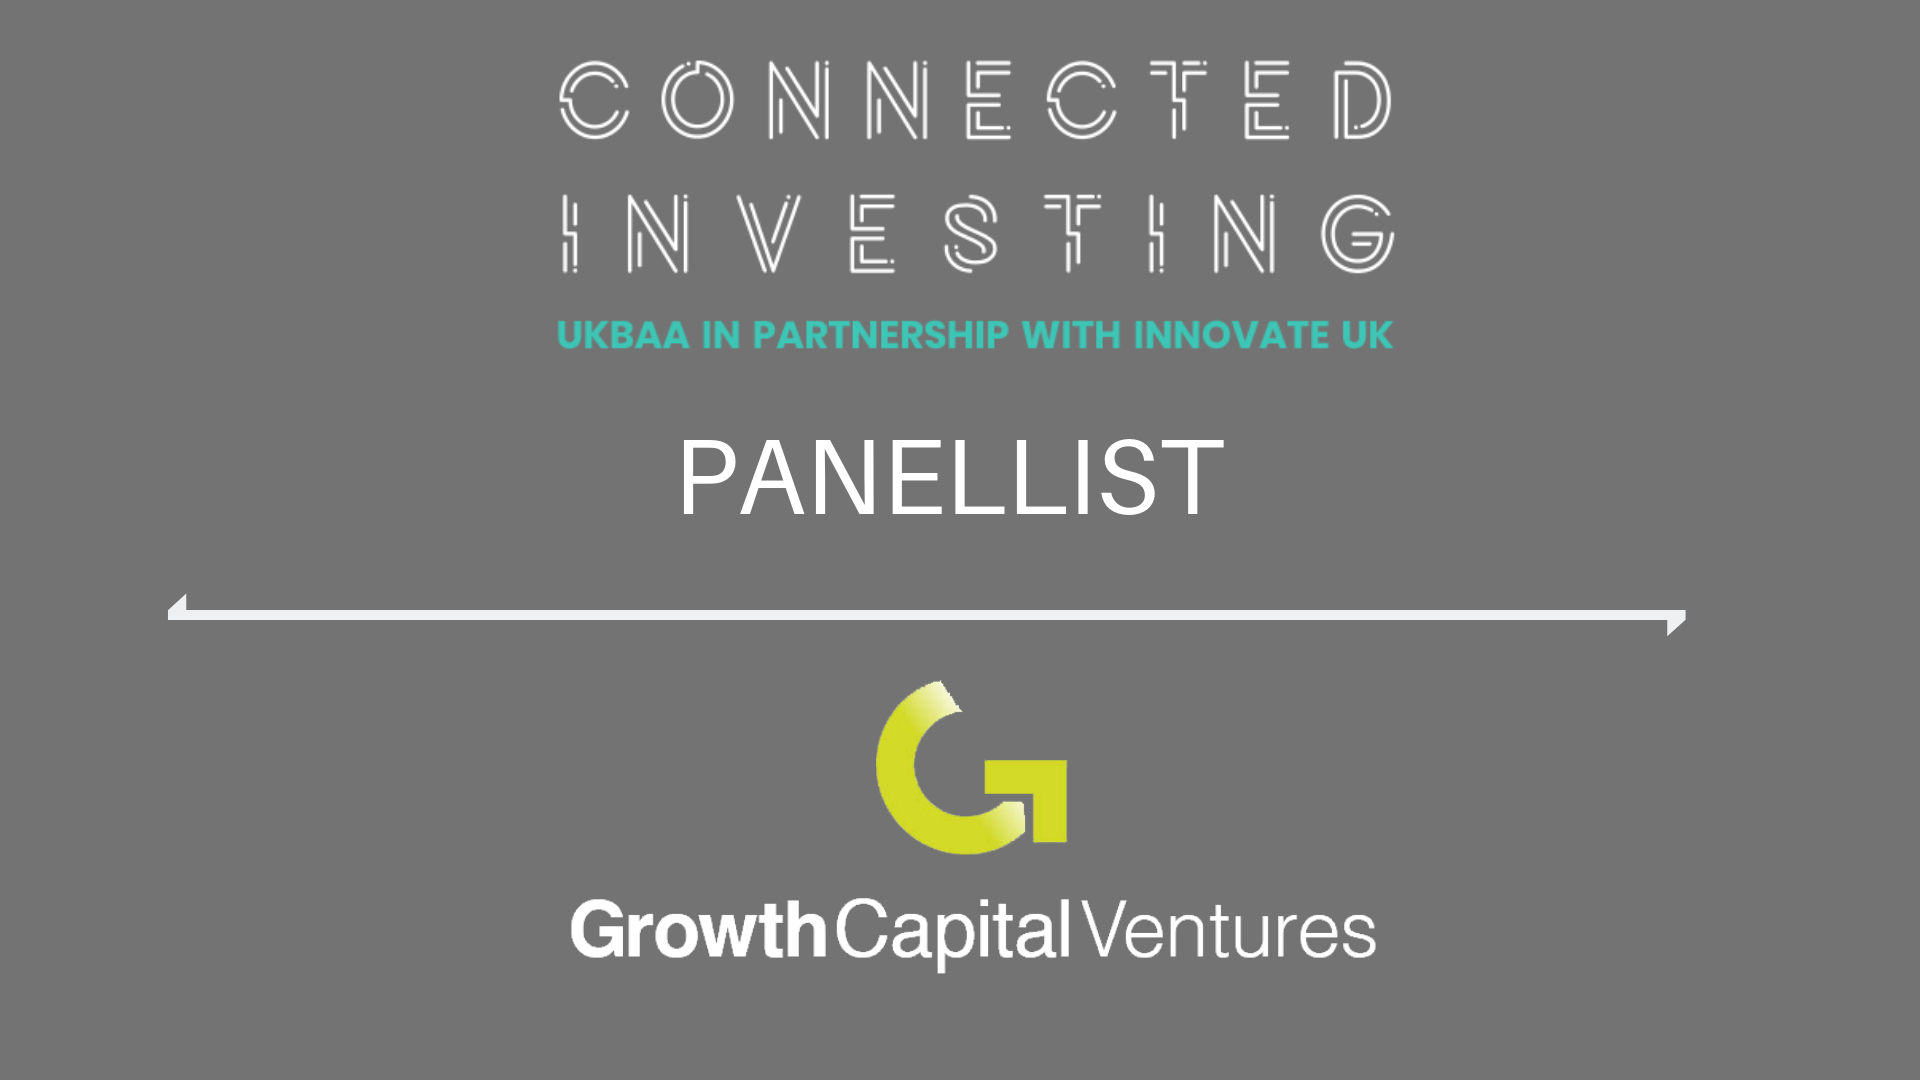 GCV invited to discuss Effective Investing at Connected Investing Event